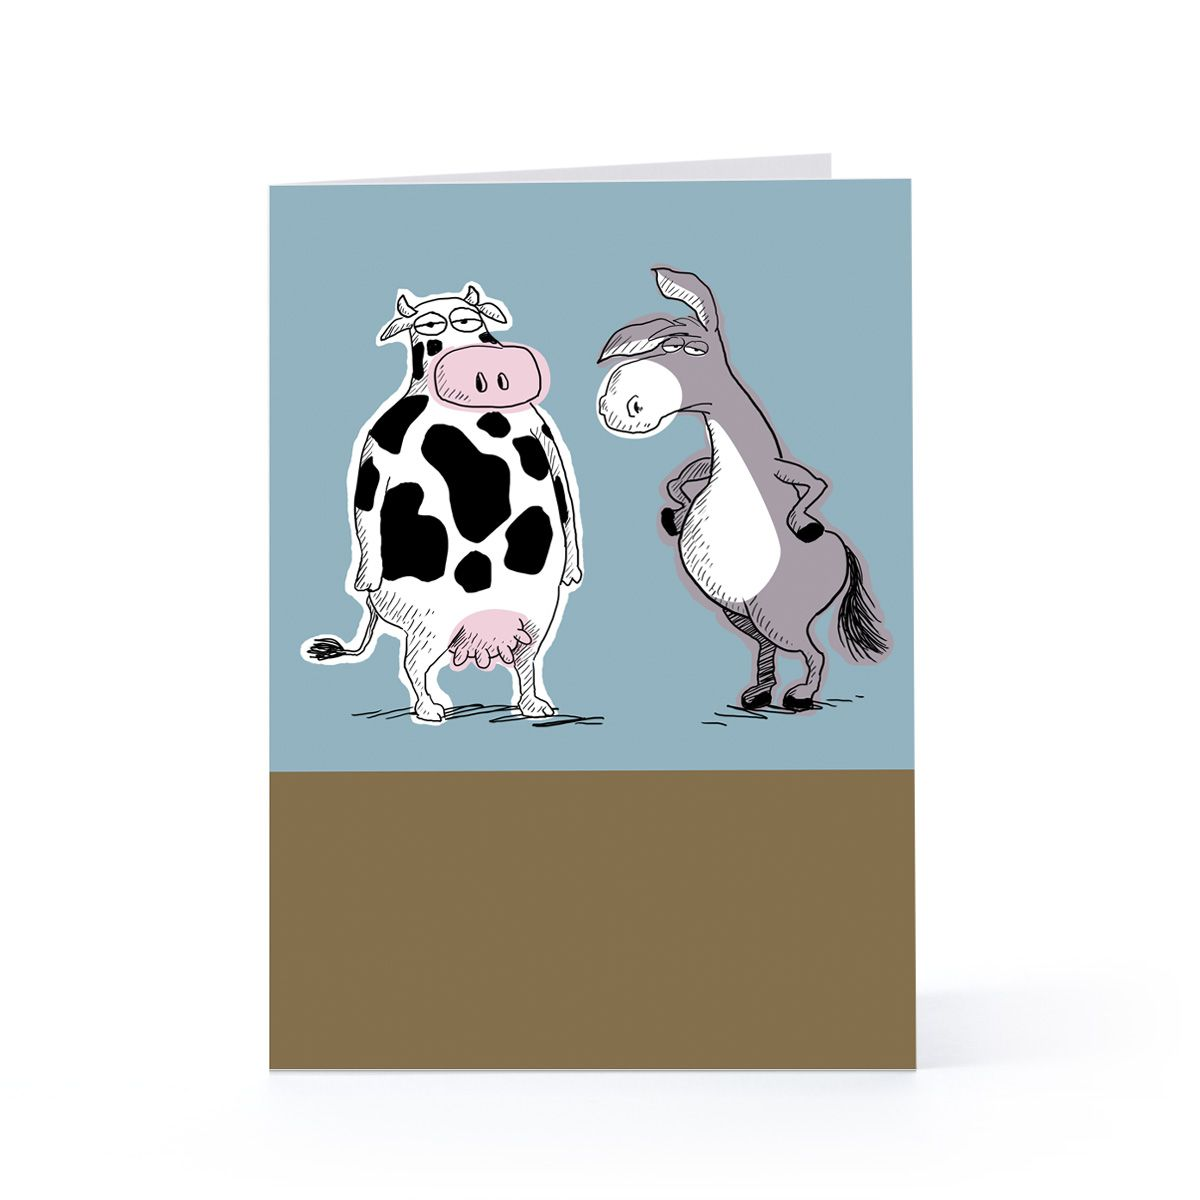 Cow and donkey joke birthday greeting card hallmark cards cow and donkey joke birthday greeting card hallmark kristyandbryce Image collections